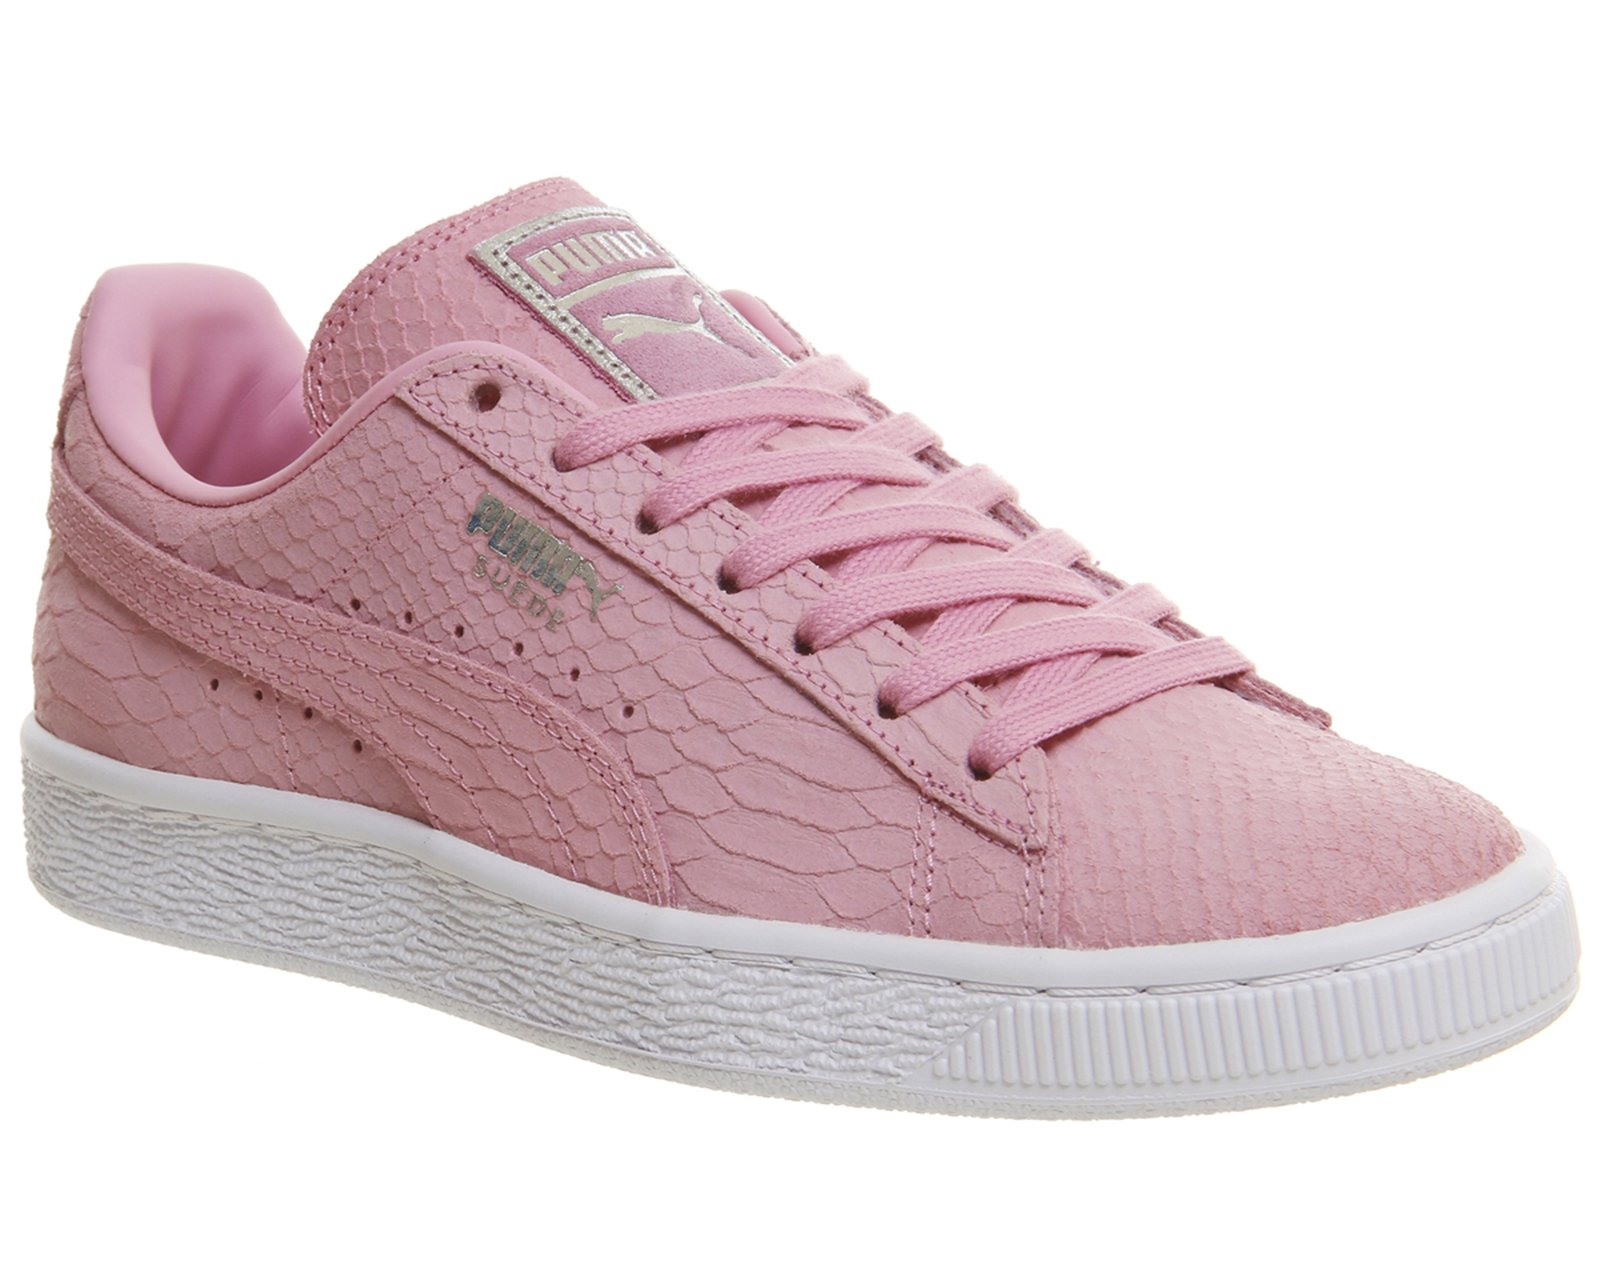 05c9659165b60 Sentinel Womens Puma Suede Classic Prism Pink White Exotic Trainers Shoes